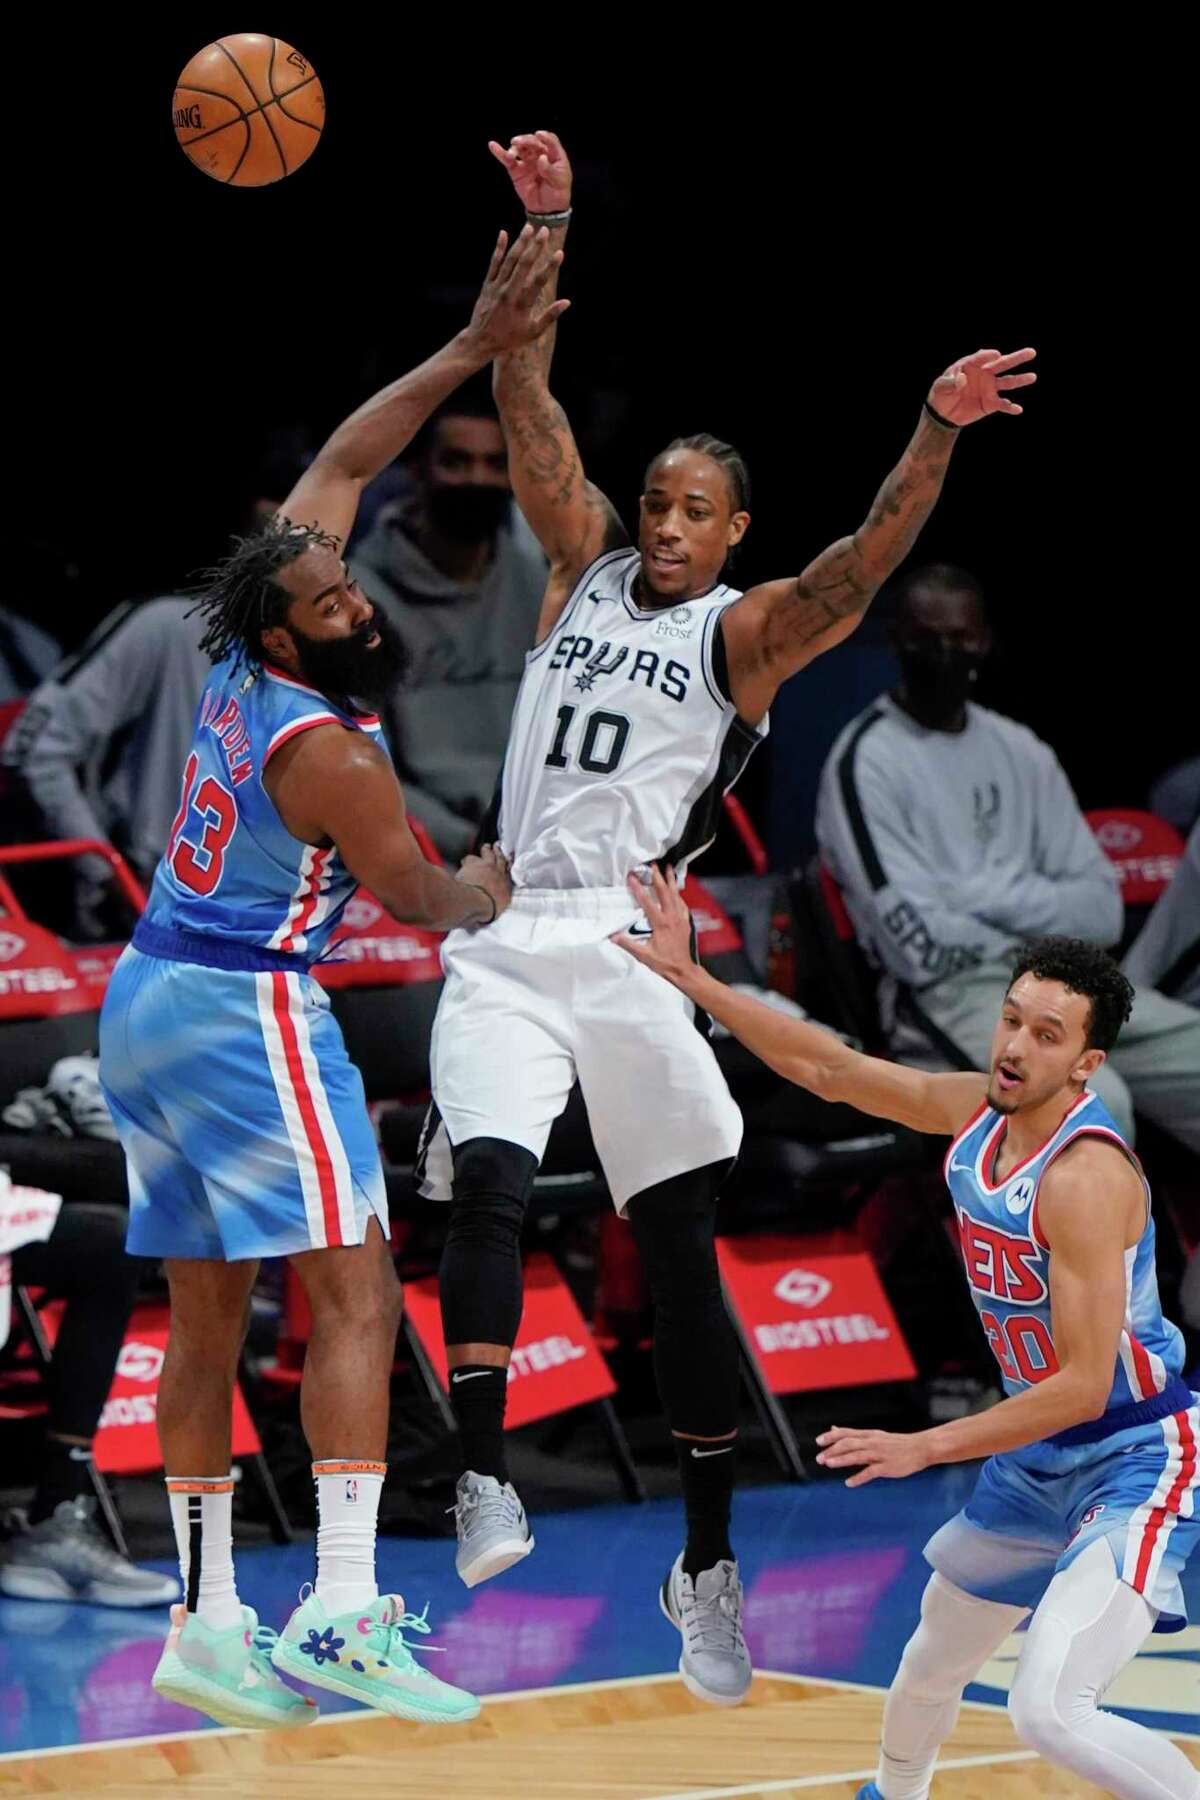 The Spurs' DeMar DeRozan (10) passes away from the Brooklyn Nets' James Harden (13) and Landry Shamet (20) during the second half of an NBA basketball game Wednesday, May 12, 2021, in New York.